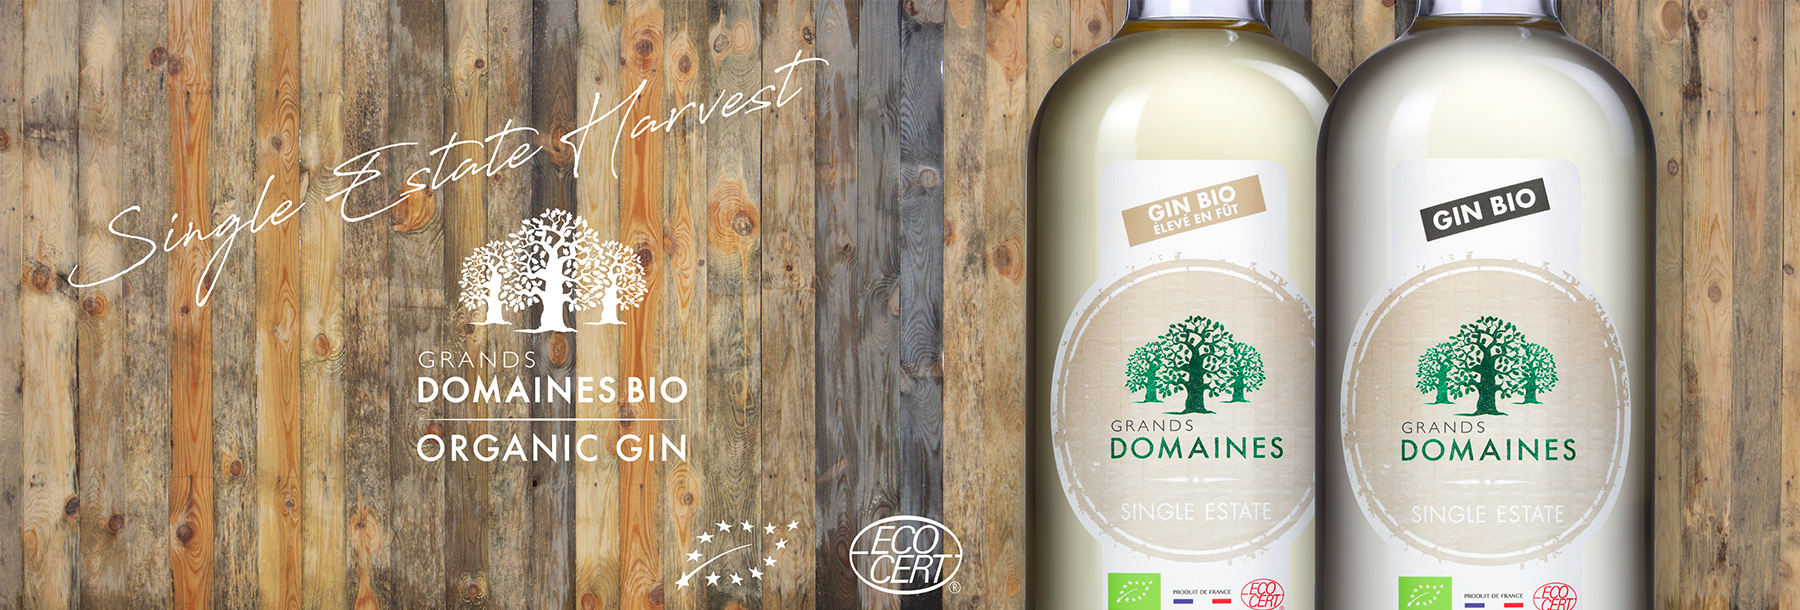 Grands Domaines Bio Gin Organic Single Estate Harvest